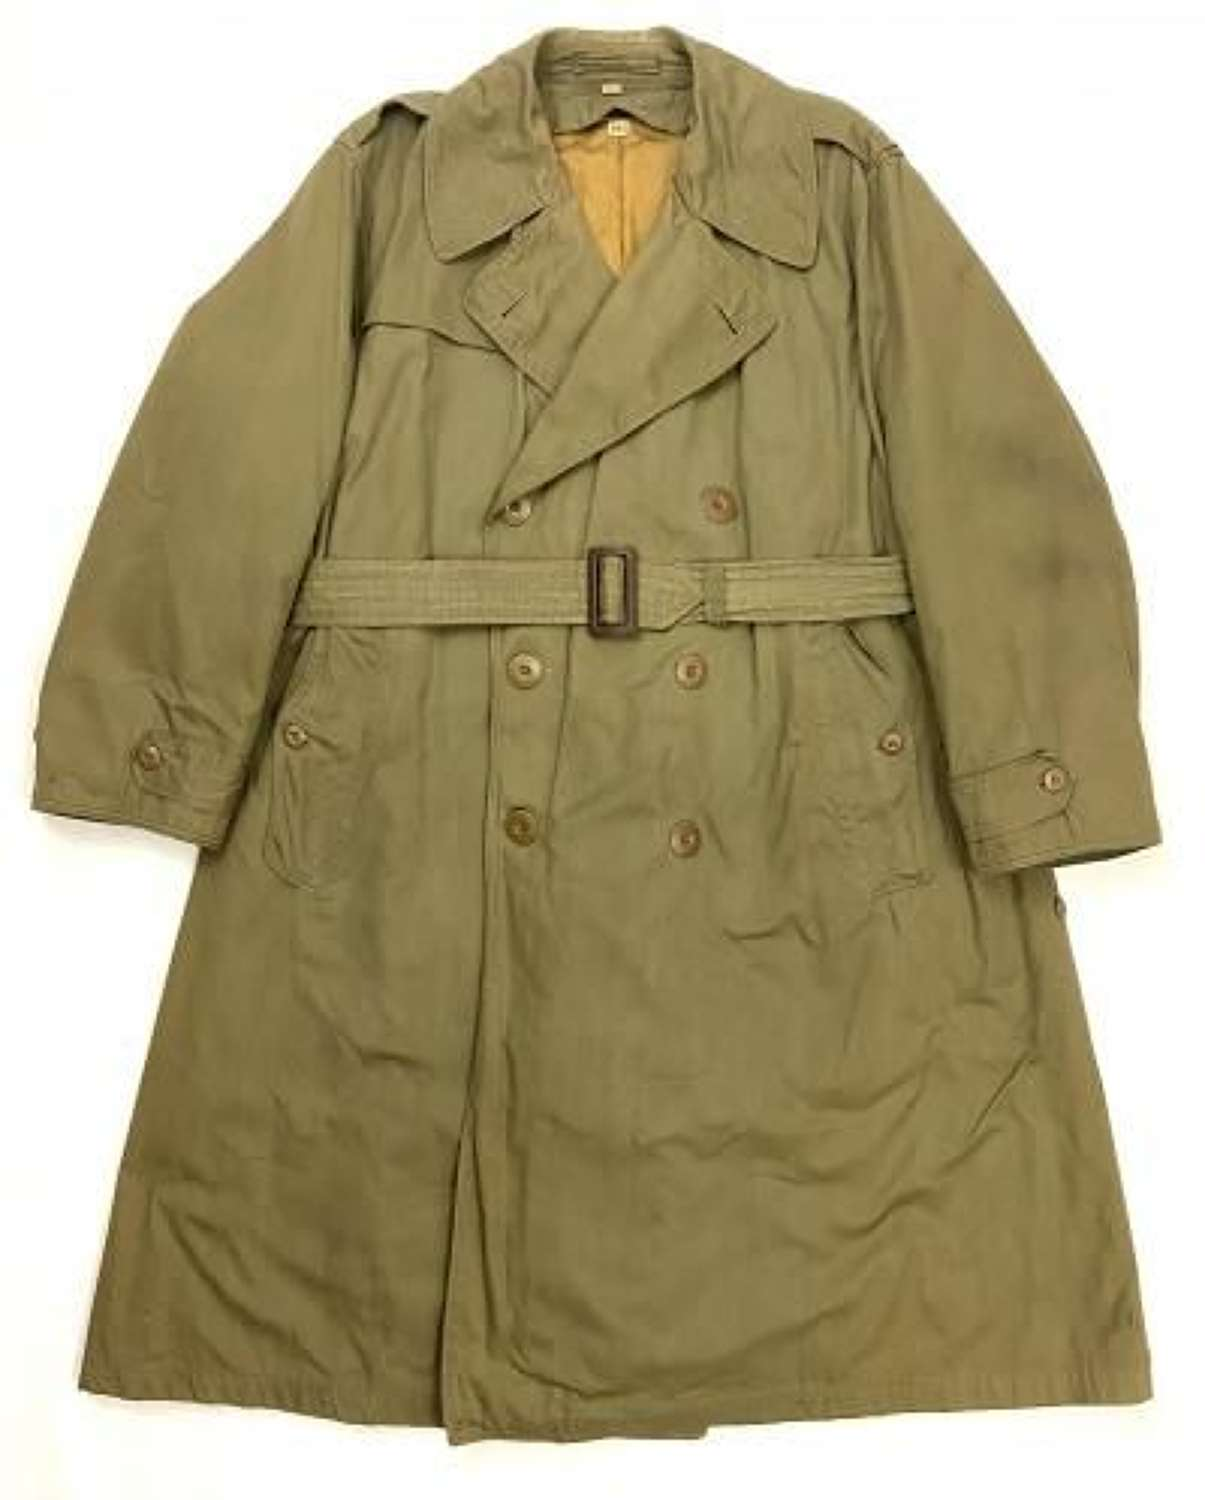 Original 1944 Dated US Army Officers Raincoat - Size 40S